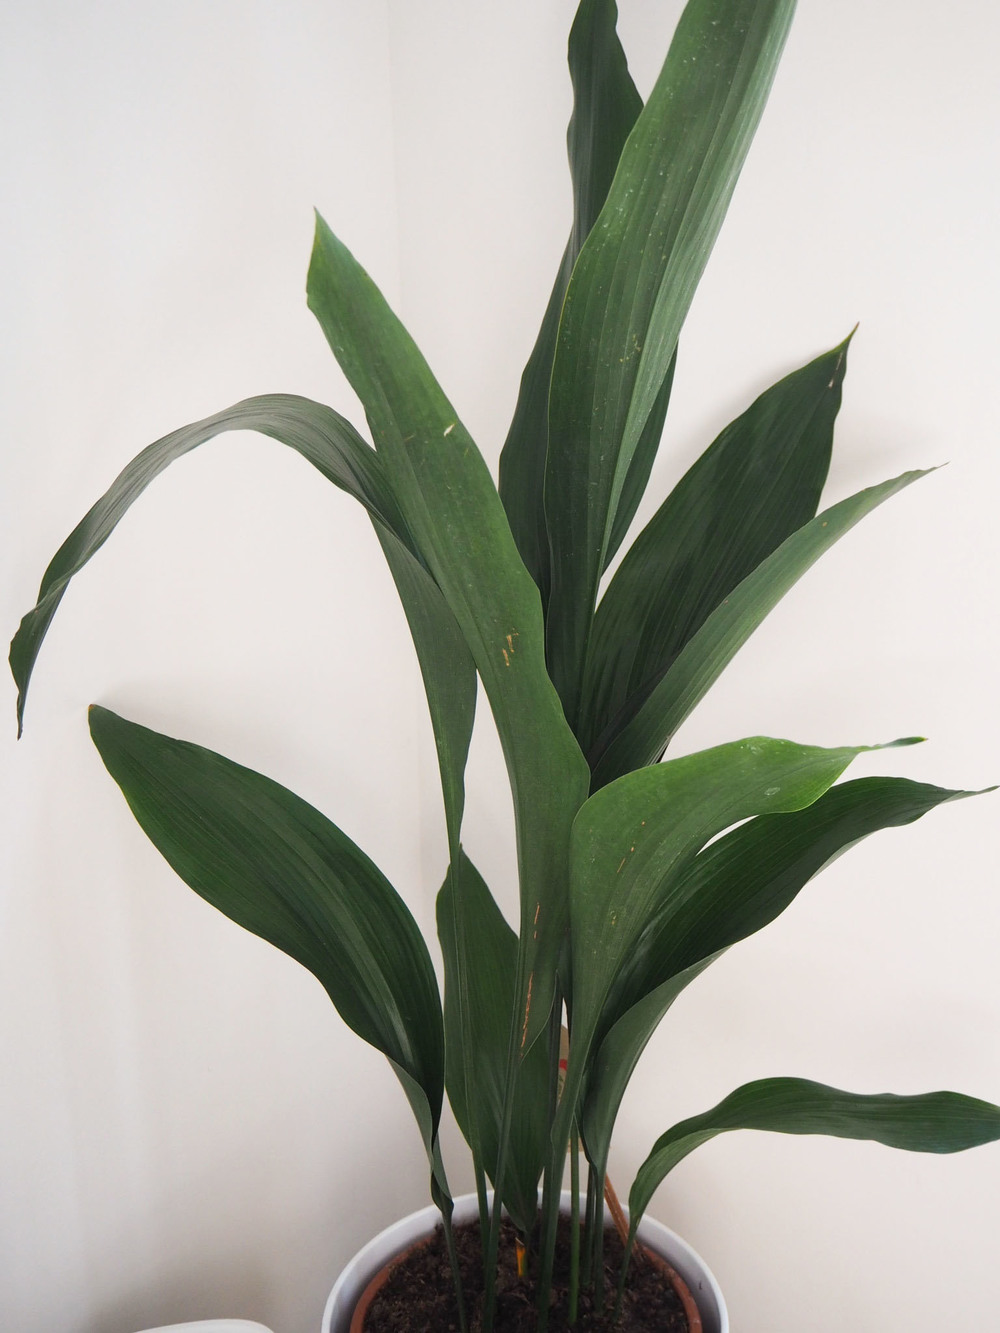 The cast iron plant, which thrives on neglect! My Aspidistra Elatior House Plant.